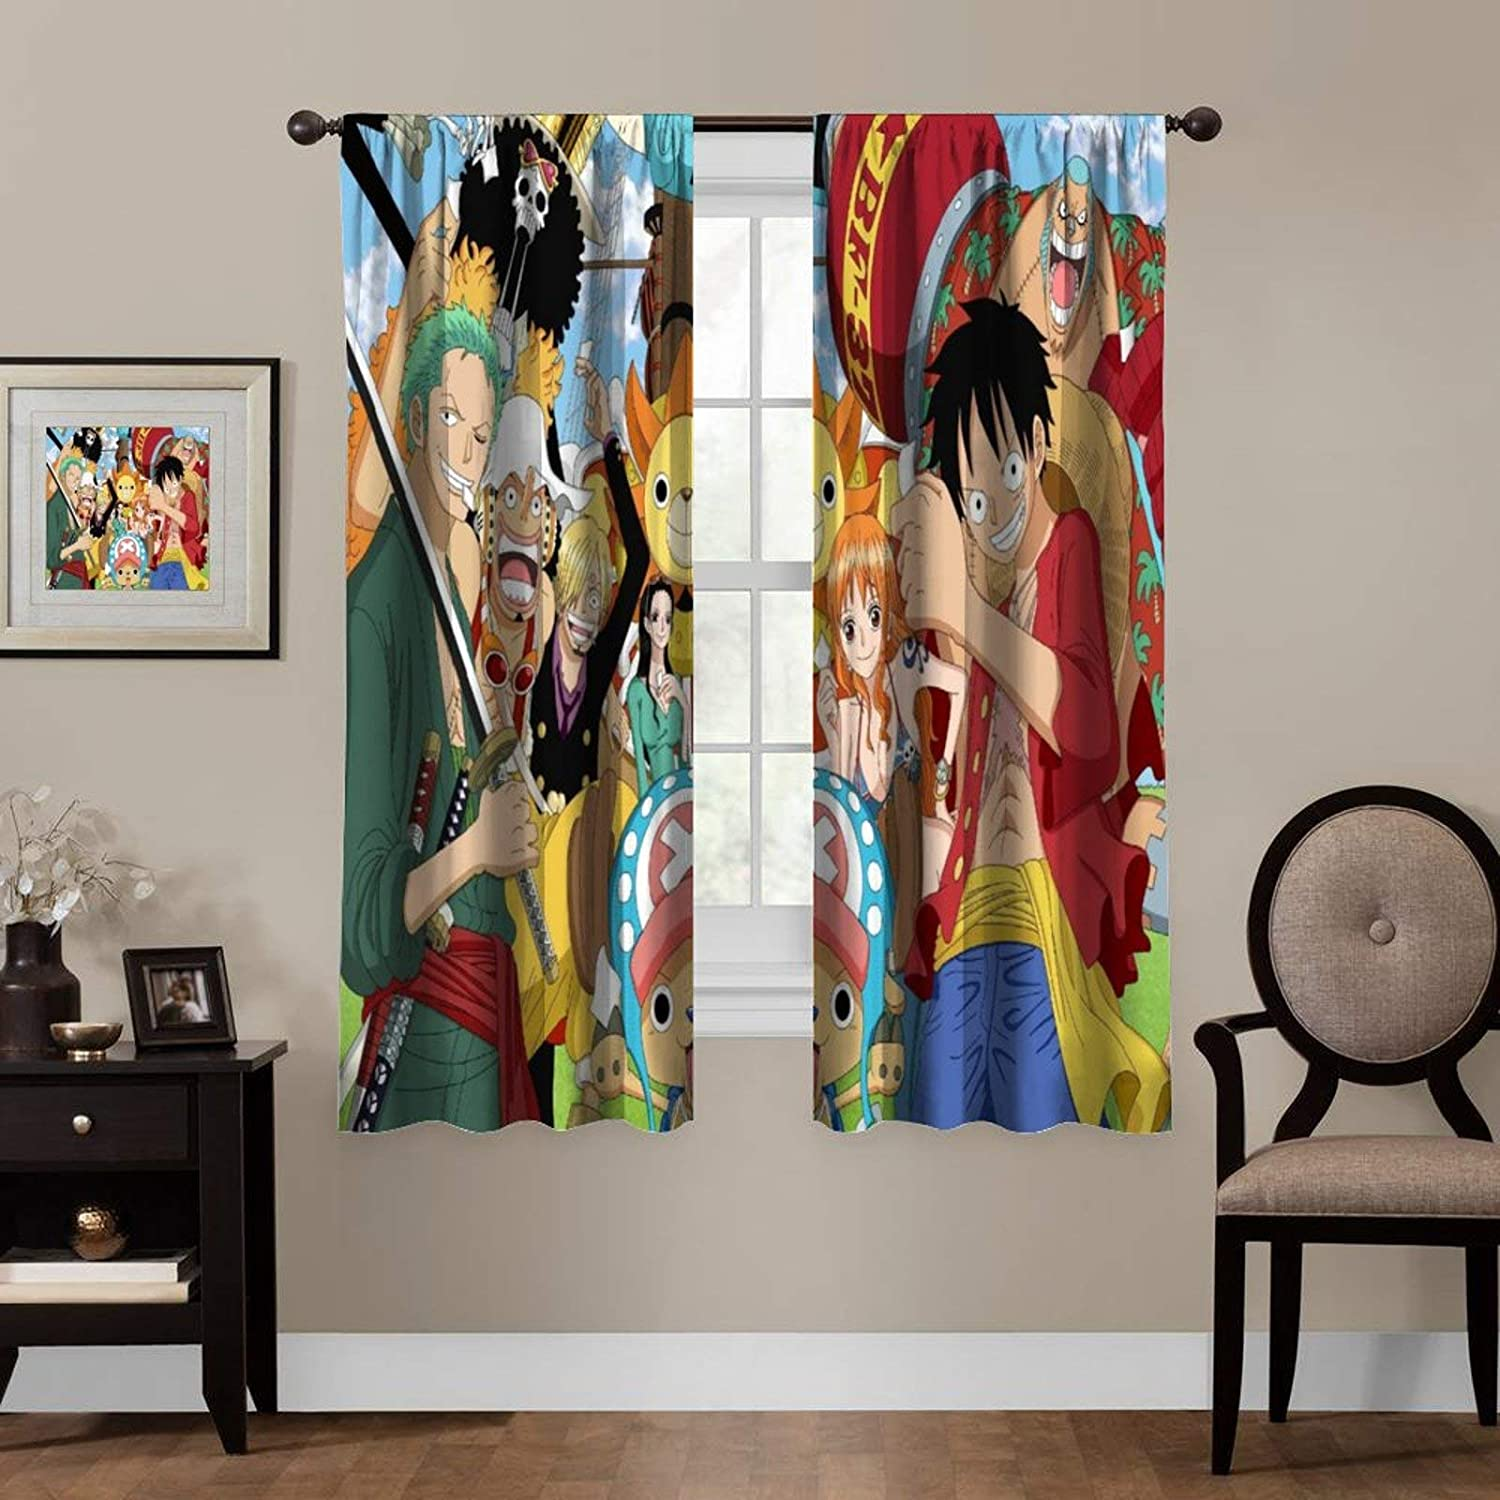 LCGGDB Anime Blackout Curtains,One Piece Luffy Robin Nami,Living Room Bedroom Window Drapes Panels Set of 2 with Rod Pocket,Soundproof Shade Curtains,for Boys and Girls Room Décor, 63x72 inches